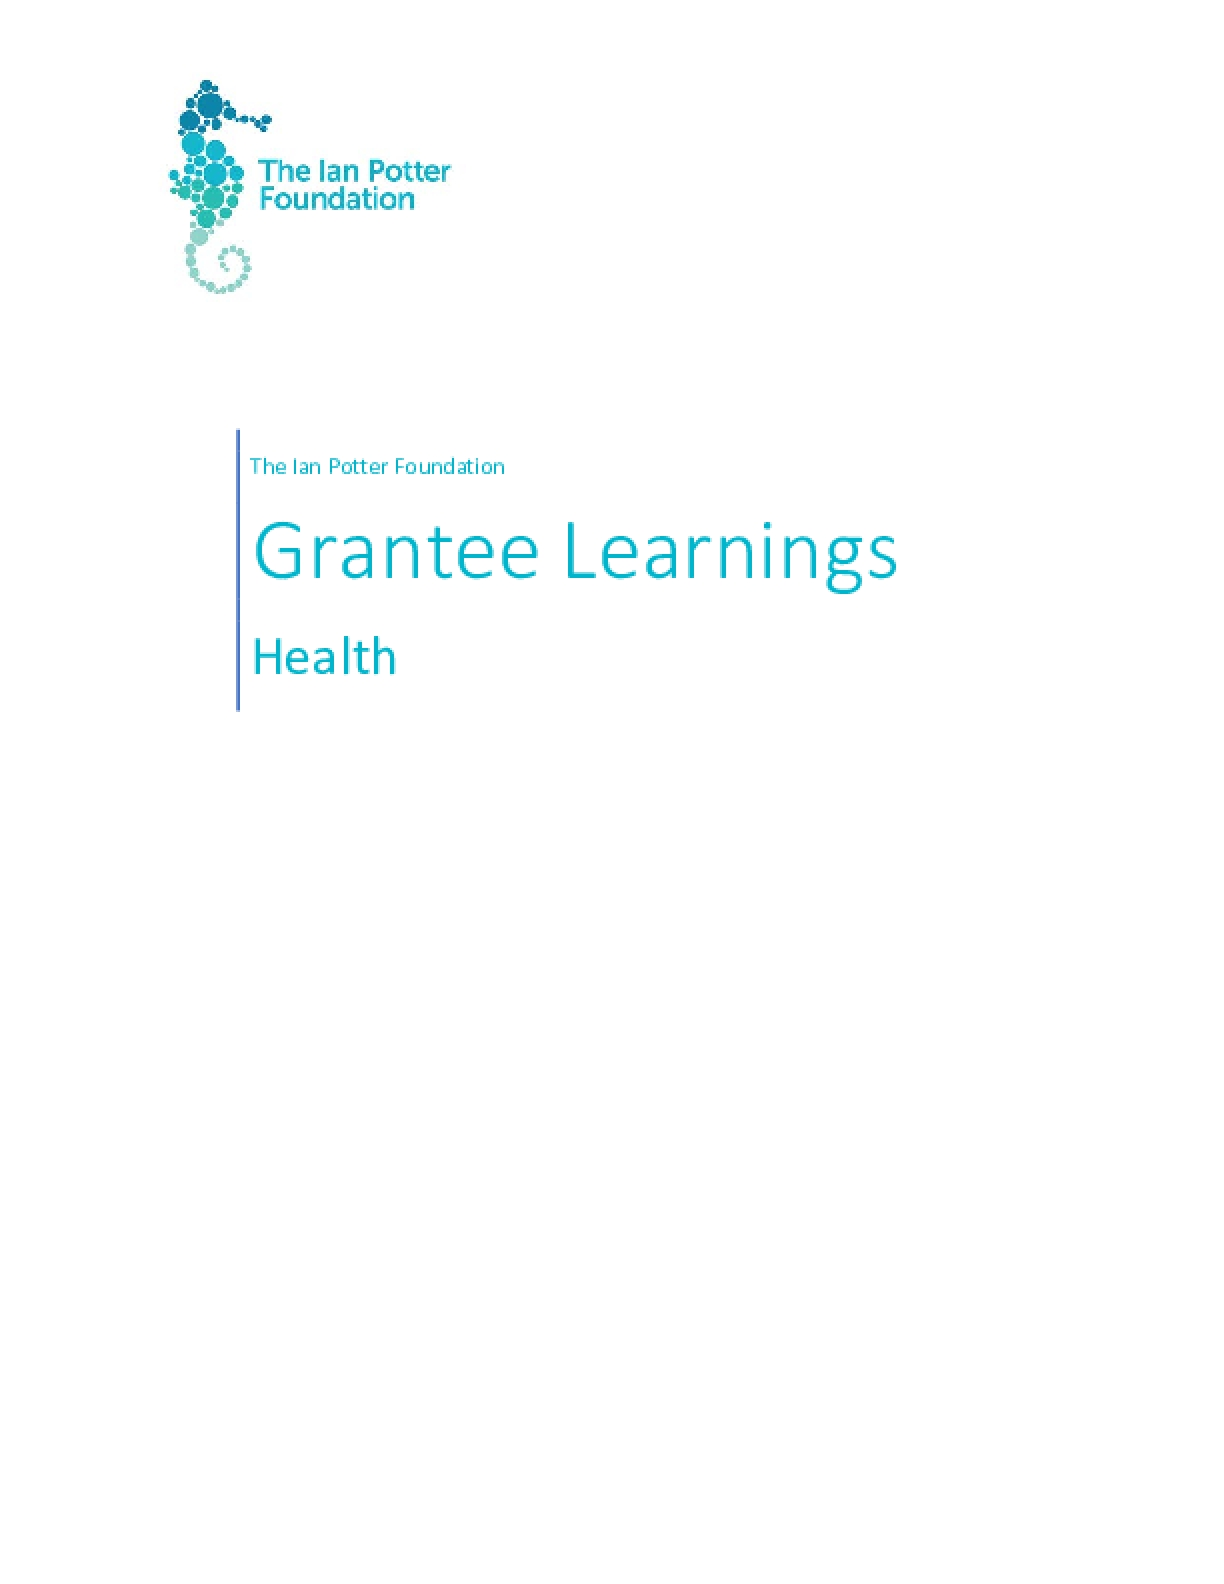 The Ian Potter Foundation Grantee Learnings: Health